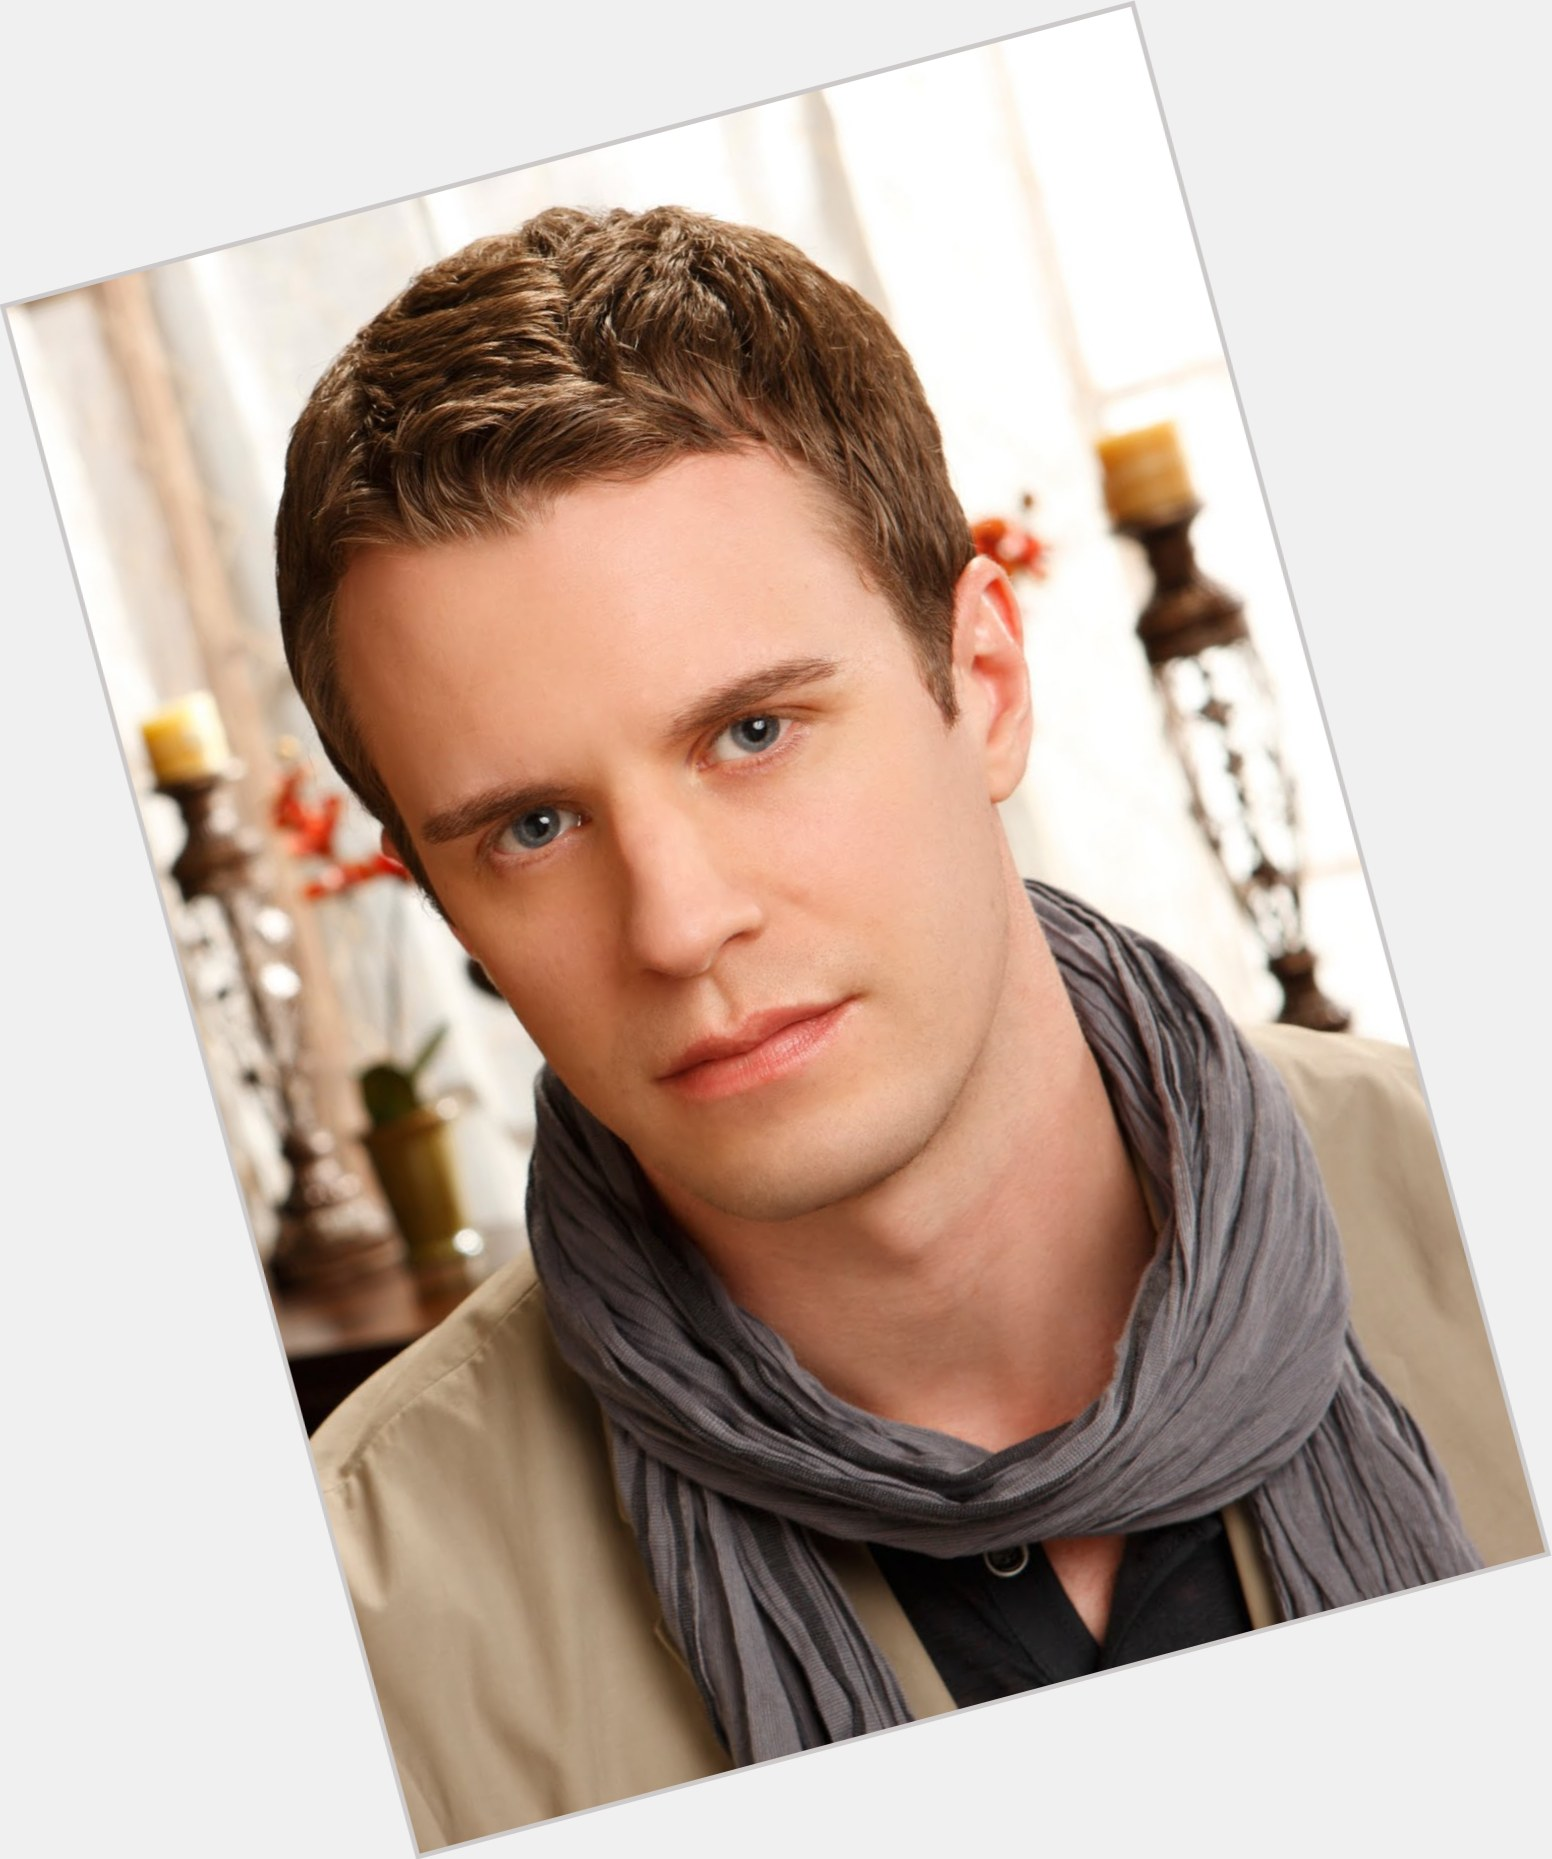 luke gay dating site Is he bisexual or gay  who is luke kleintank dating how tall is luke kleintank how old is luke kleintank hottest male celebs #mancrushmonday gerard pique.